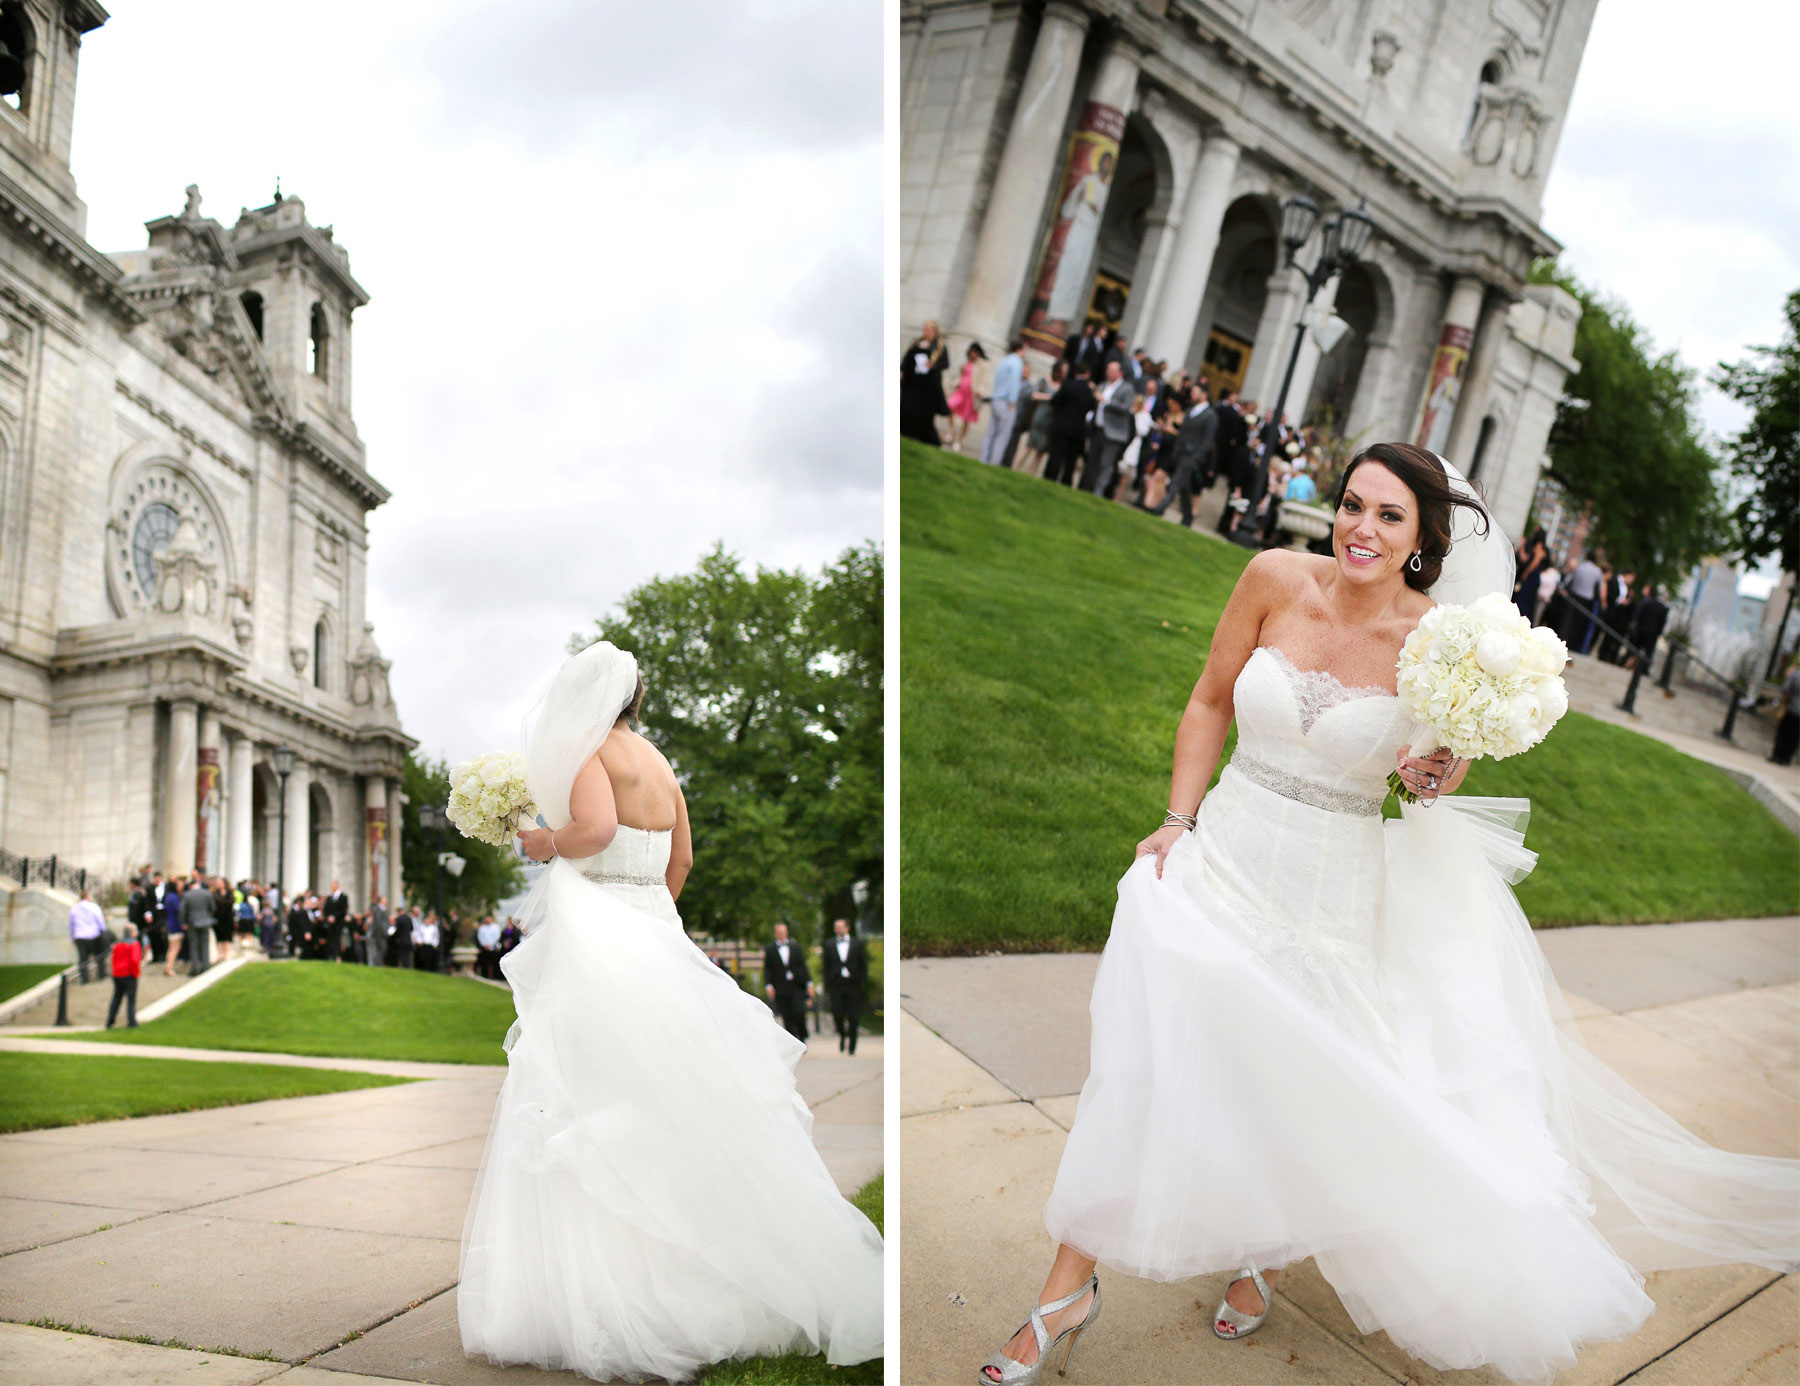 13-Minneapolis-Minnesota-Wedding-Photography-by-Vick-Photography-Downtown-Basilica-of-St-Marys-Church-Megan-and-Andrew.jpg